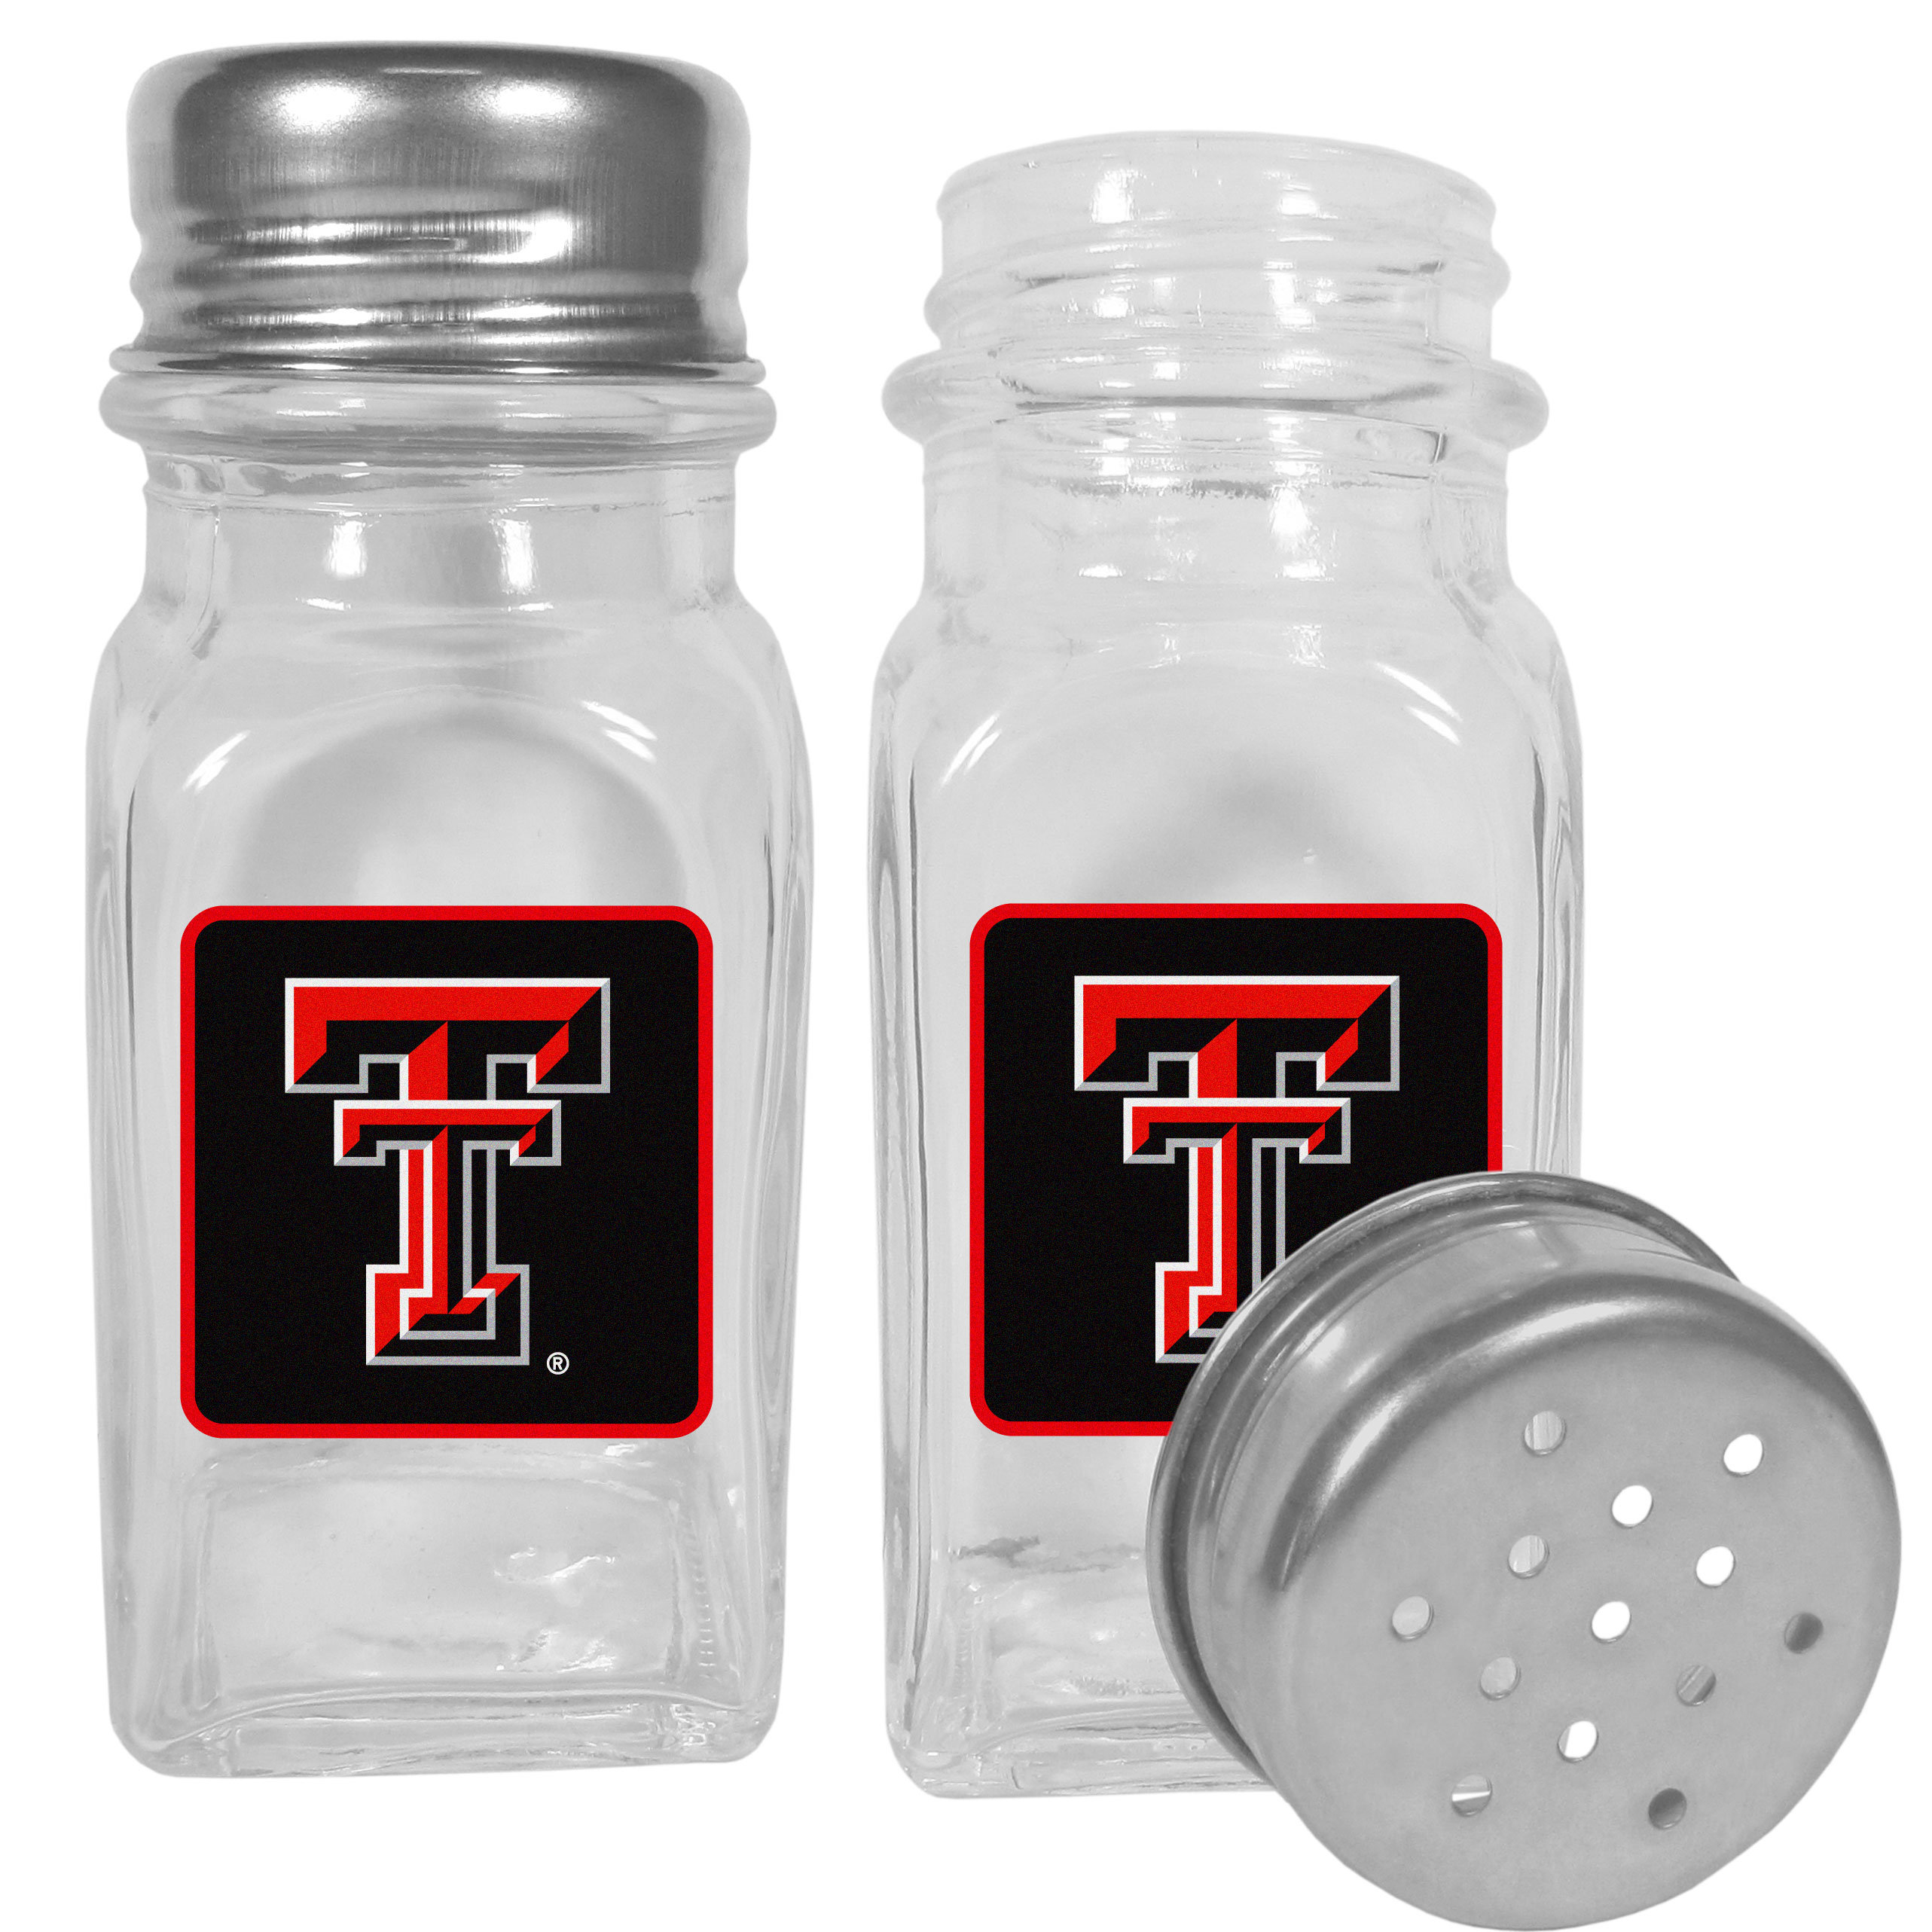 Texas Tech Raiders Graphics Salt and Pepper Shaker - No tailgate party is complete without your Texas Tech Raiders salt & pepper shakers featuring bright team logos. The diner replica salt and pepper shakers are glass with screw top lids. These team shakers are a great grill accessory whether you are barbecuing on the patio, picnicing or having a game day party.